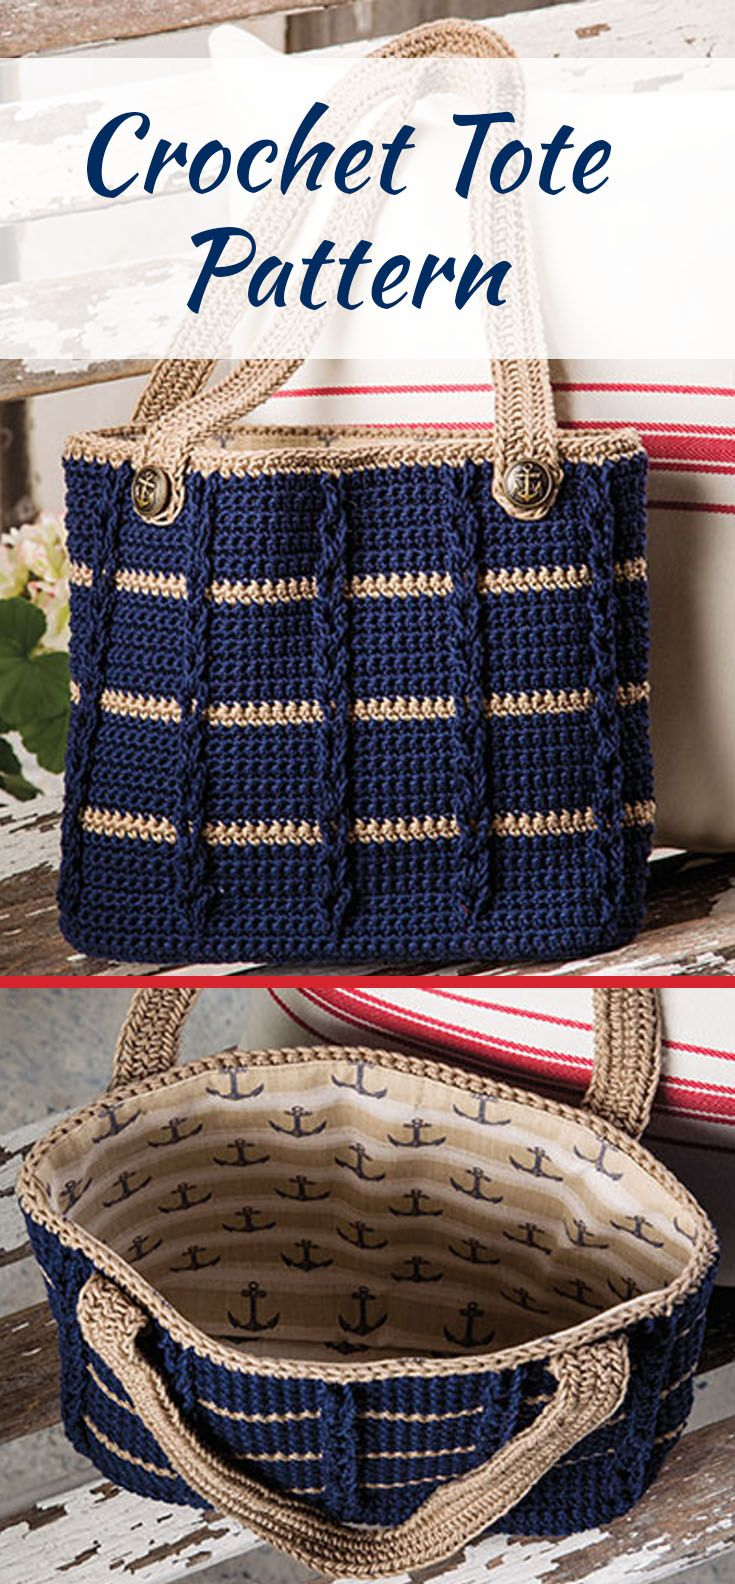 Adorable lined crocheted tote has cables and glamor. Electronic download crochet pattern.  #affiliate #crochetpattern